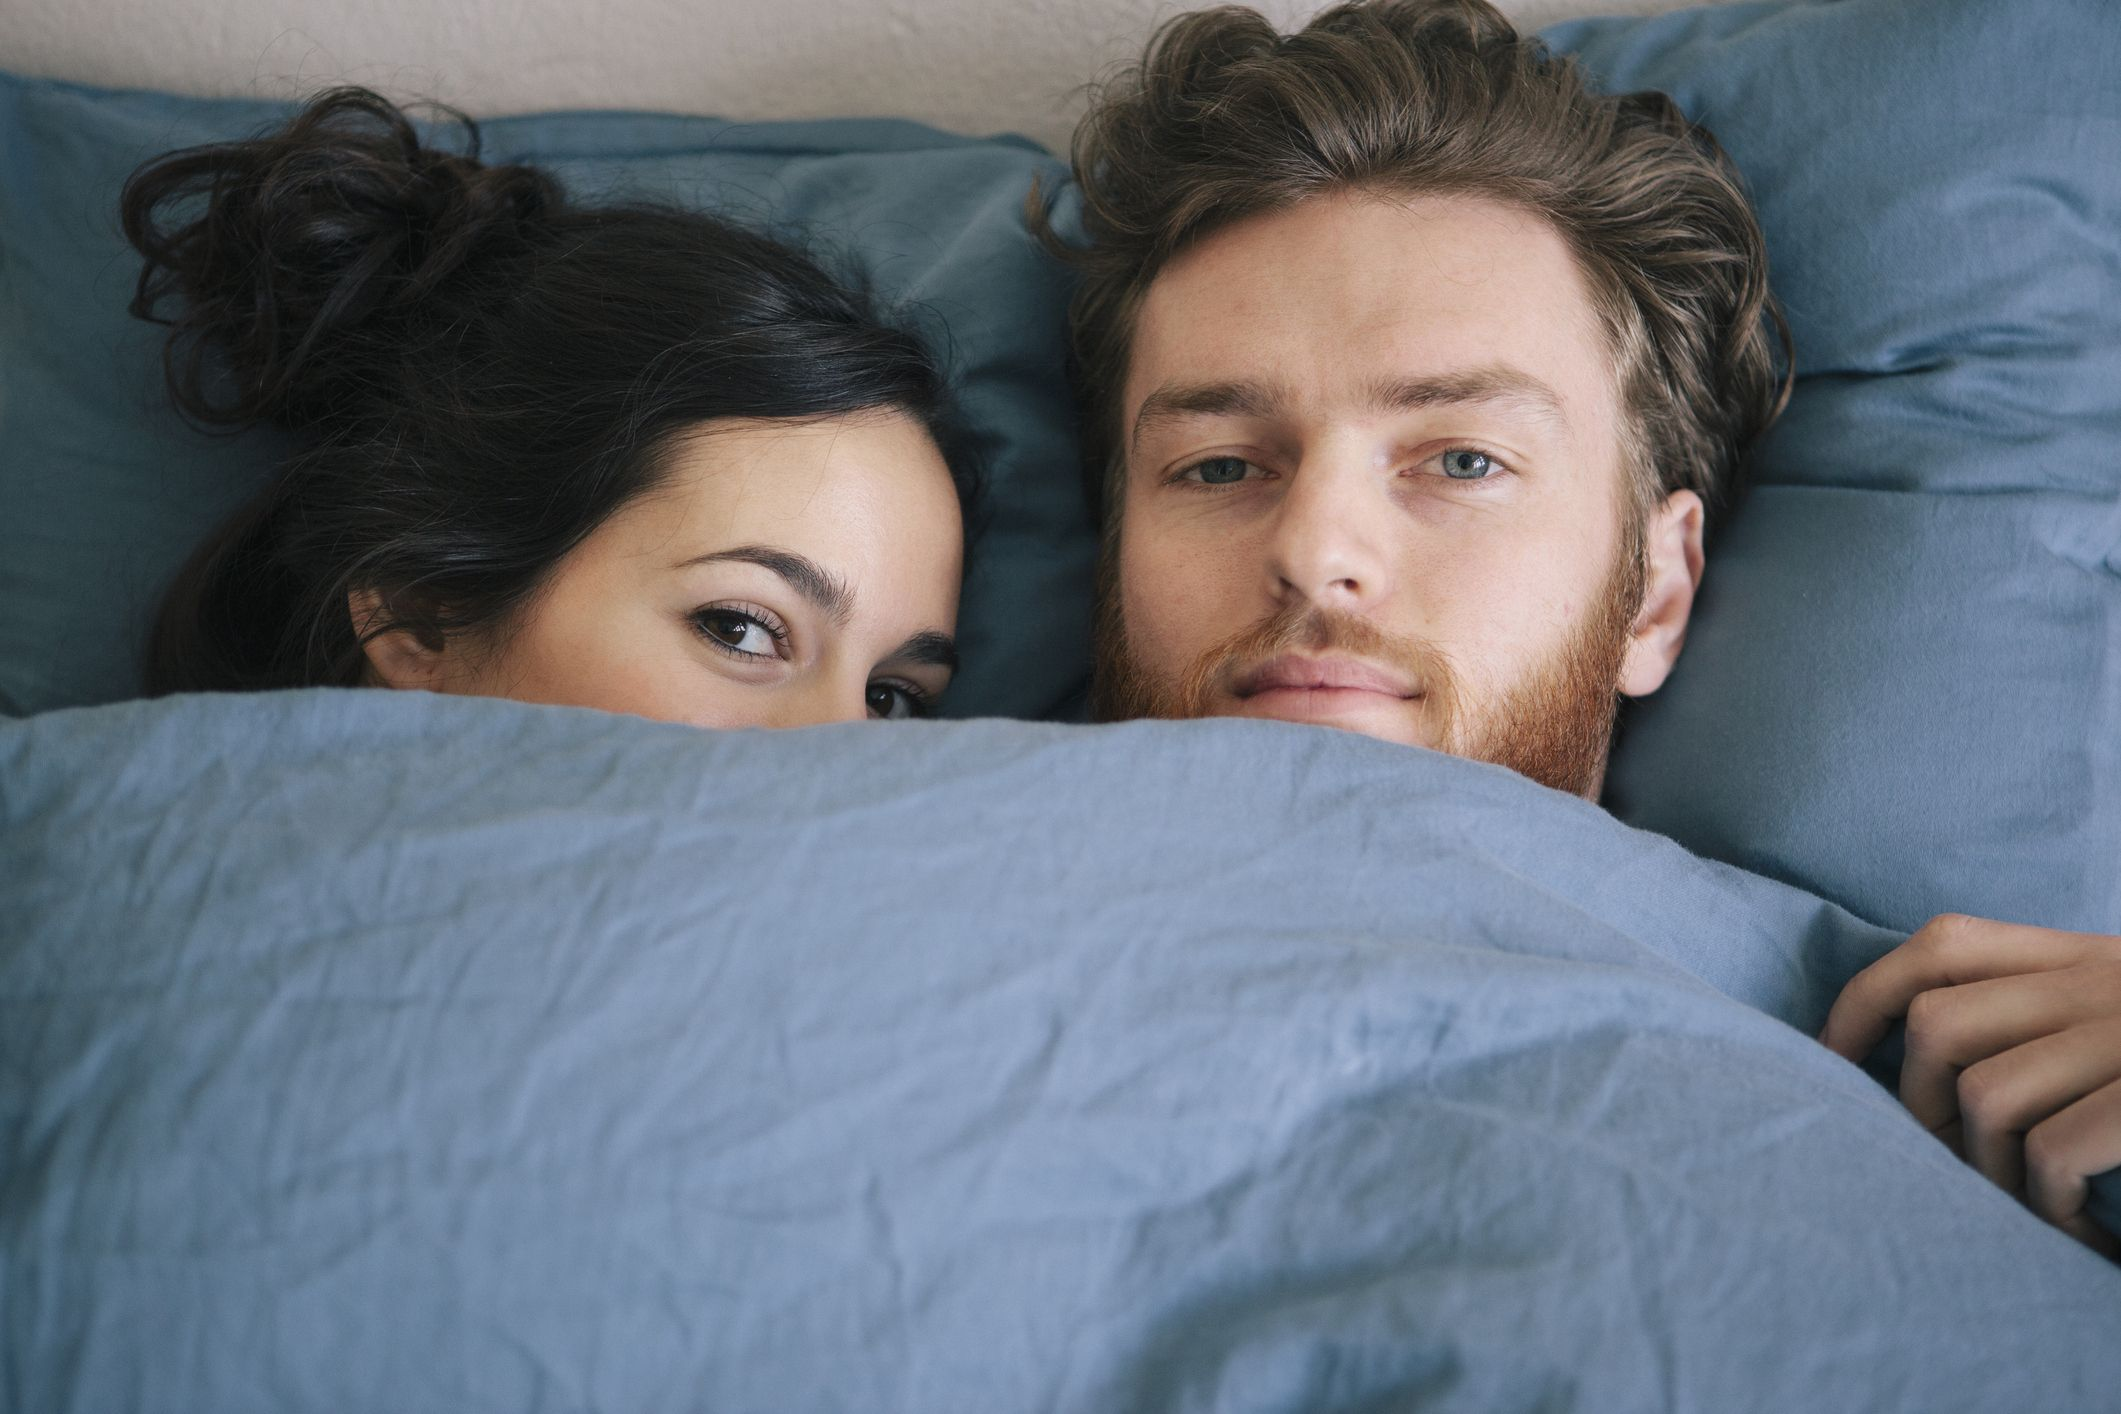 16 Signs He Likes You - Clear Signals a Guy Really Likes You